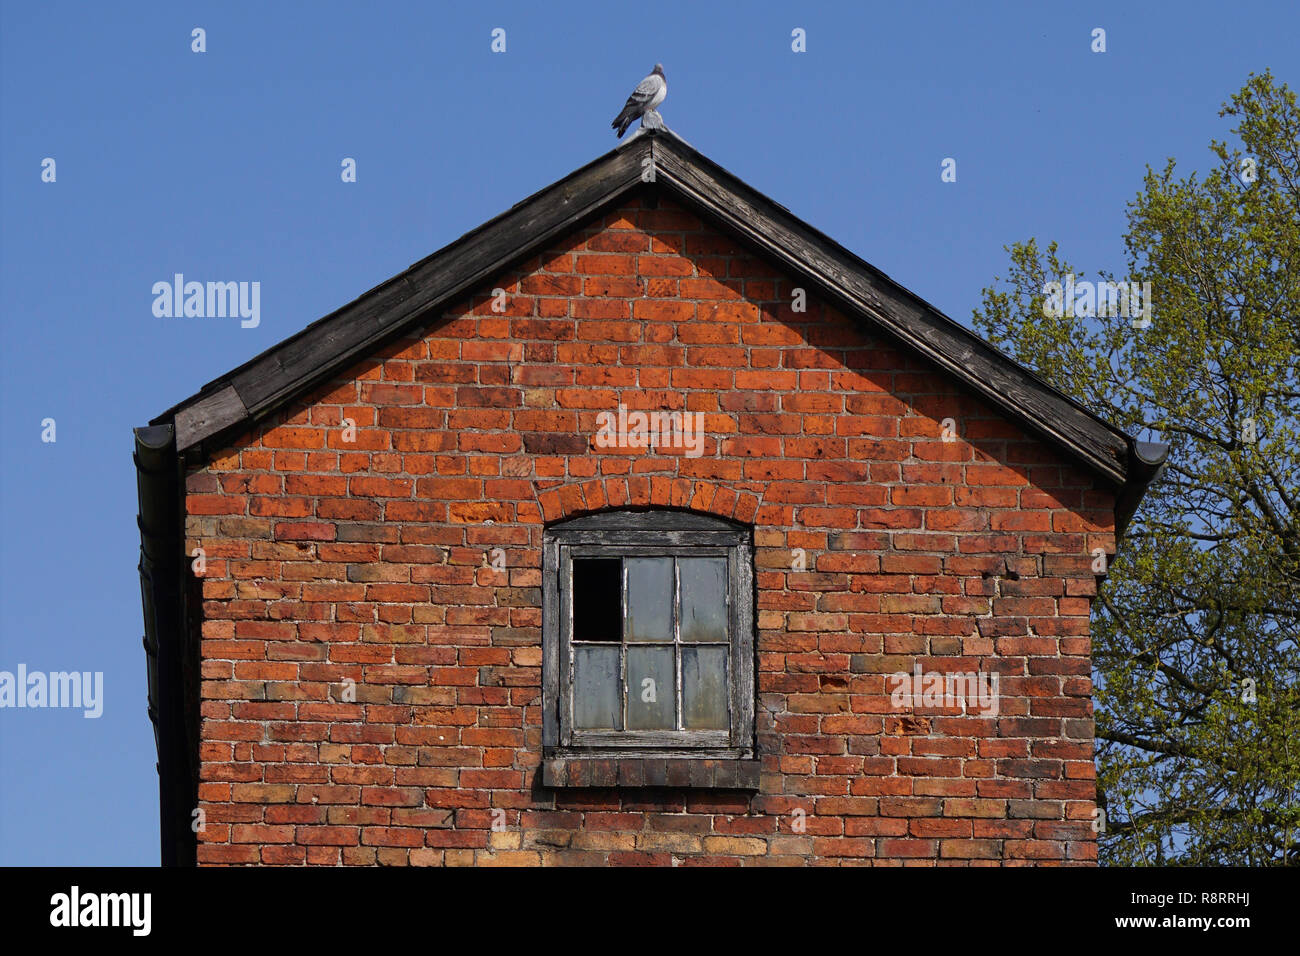 Old derelict building with broken window - Stock Image